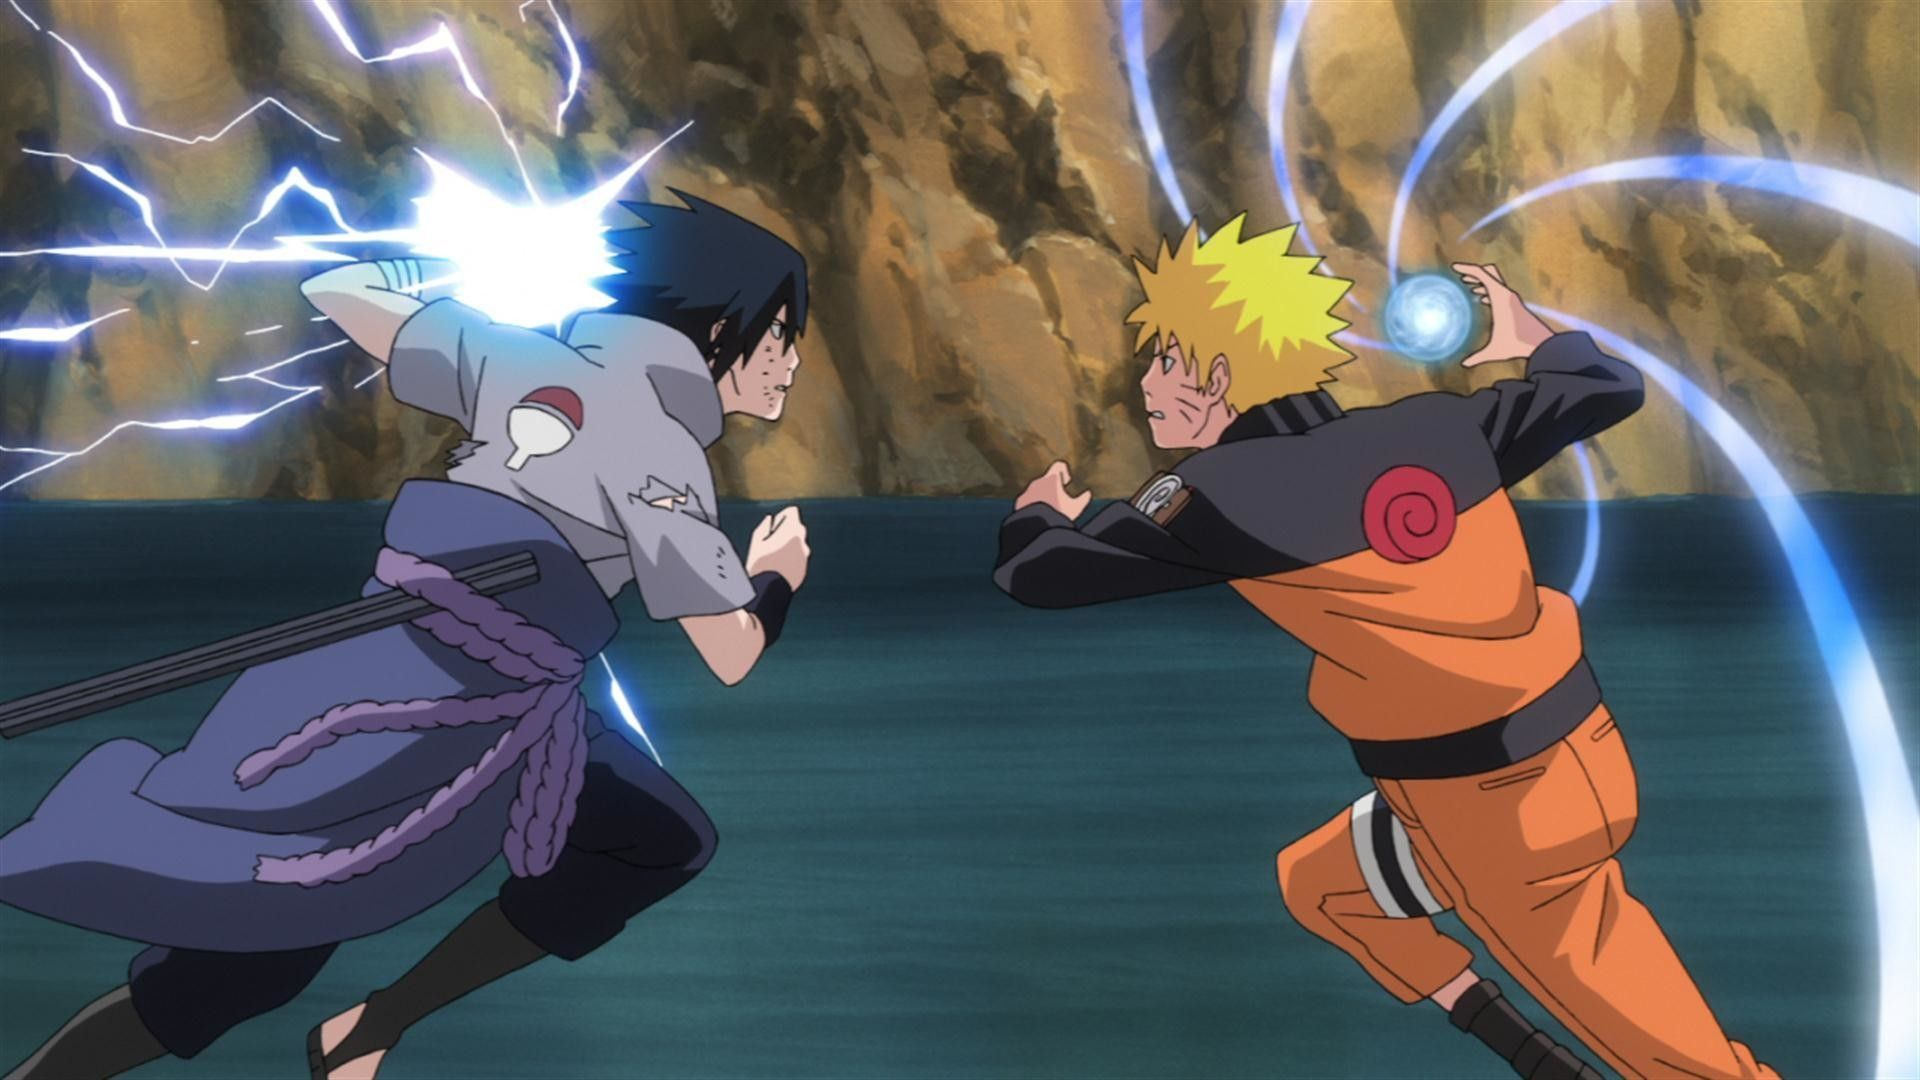 Naruto Live Wallpapers - Top Free Naruto Live Backgrounds ...